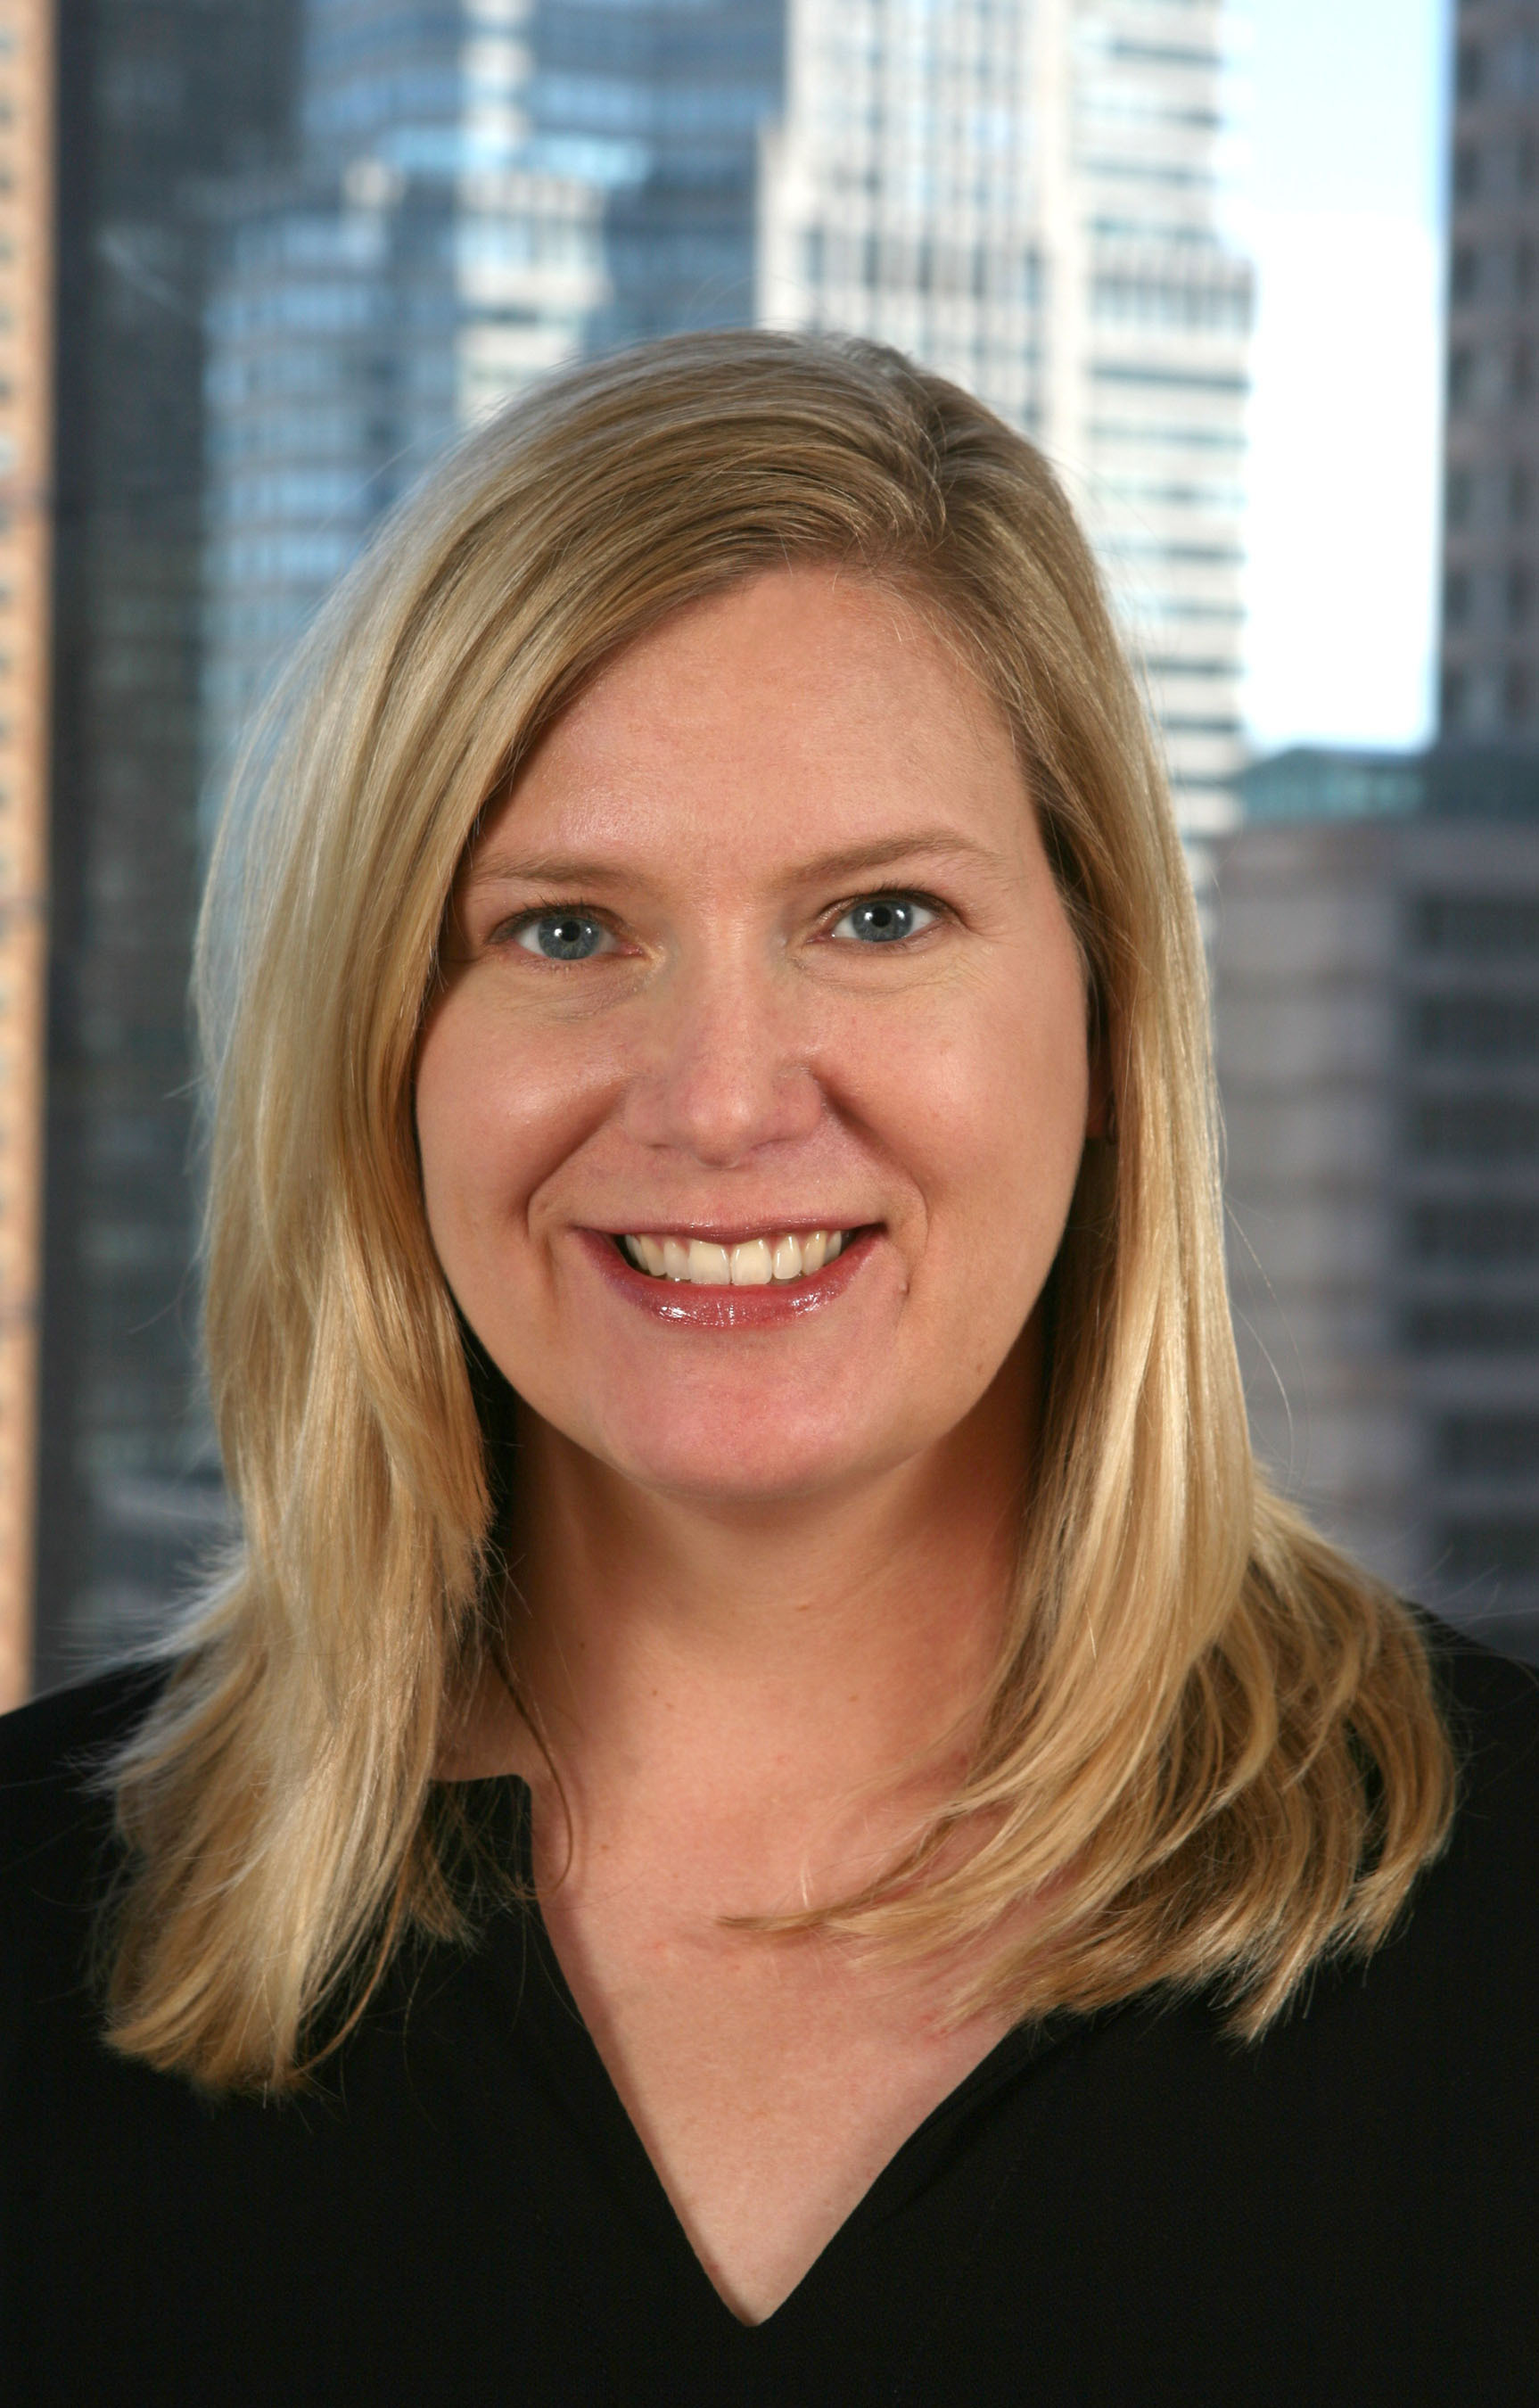 Sarah Skerik, PR Newswire's VP of Content Marketing. (PRNewsFoto/PR Newswire Association LLC)